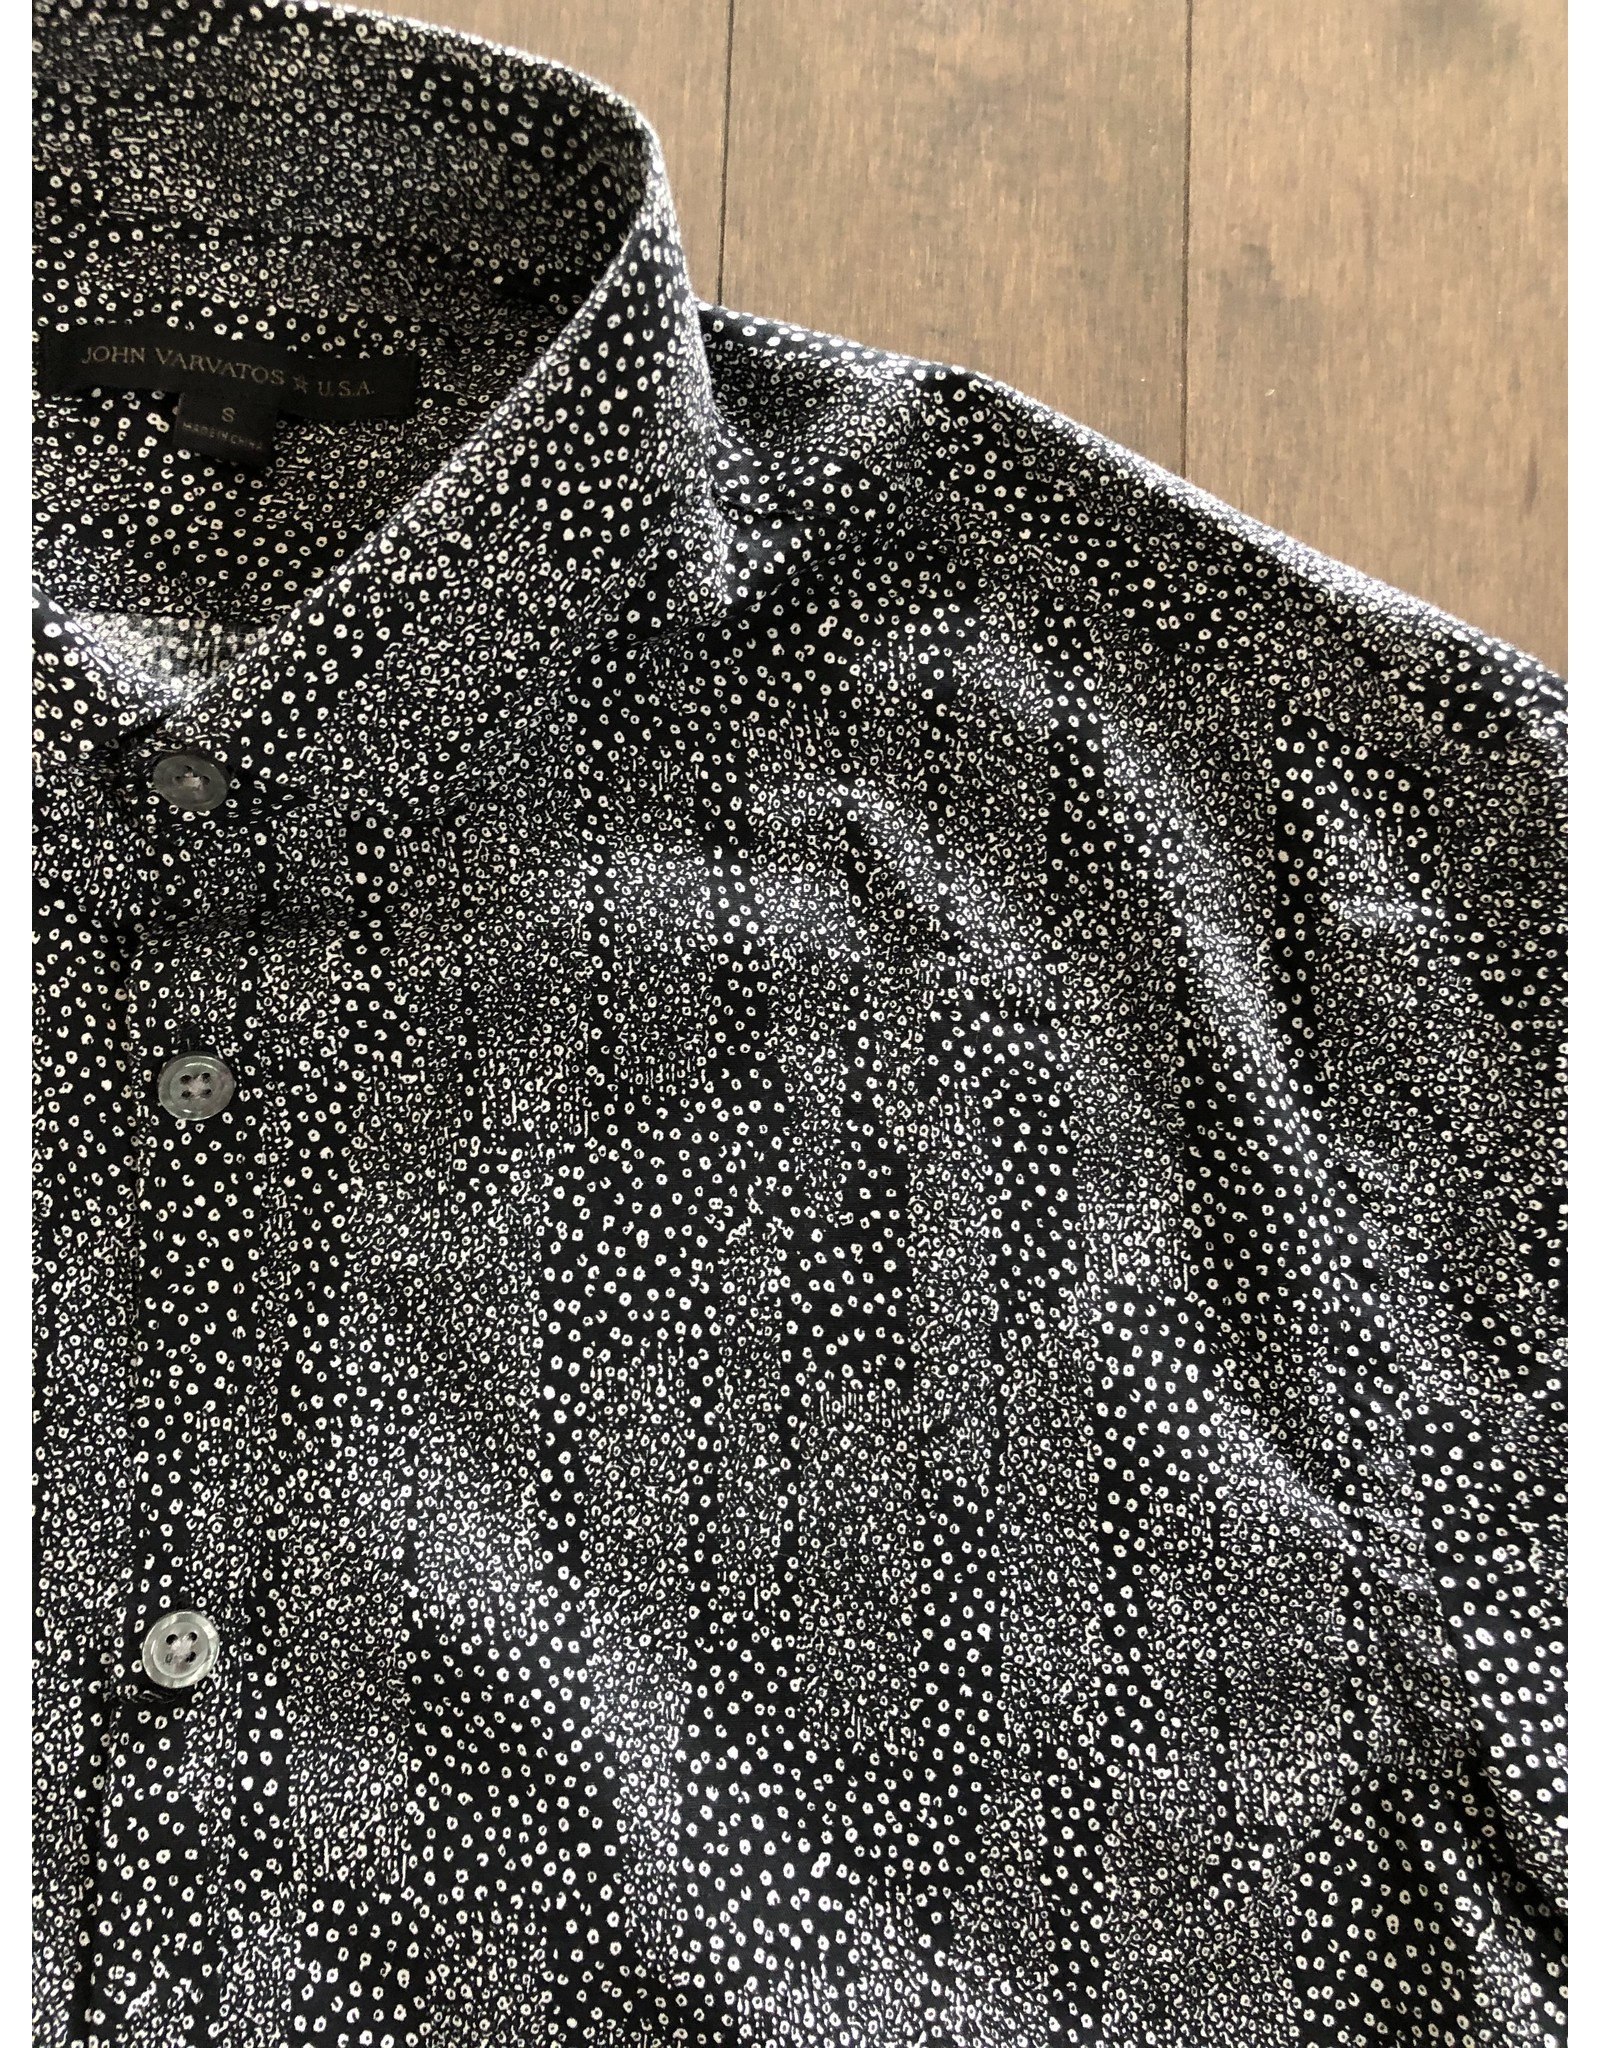 JOHN VARVATOS JOHN VARVATOS B AND W DRESS SHIRT SS20